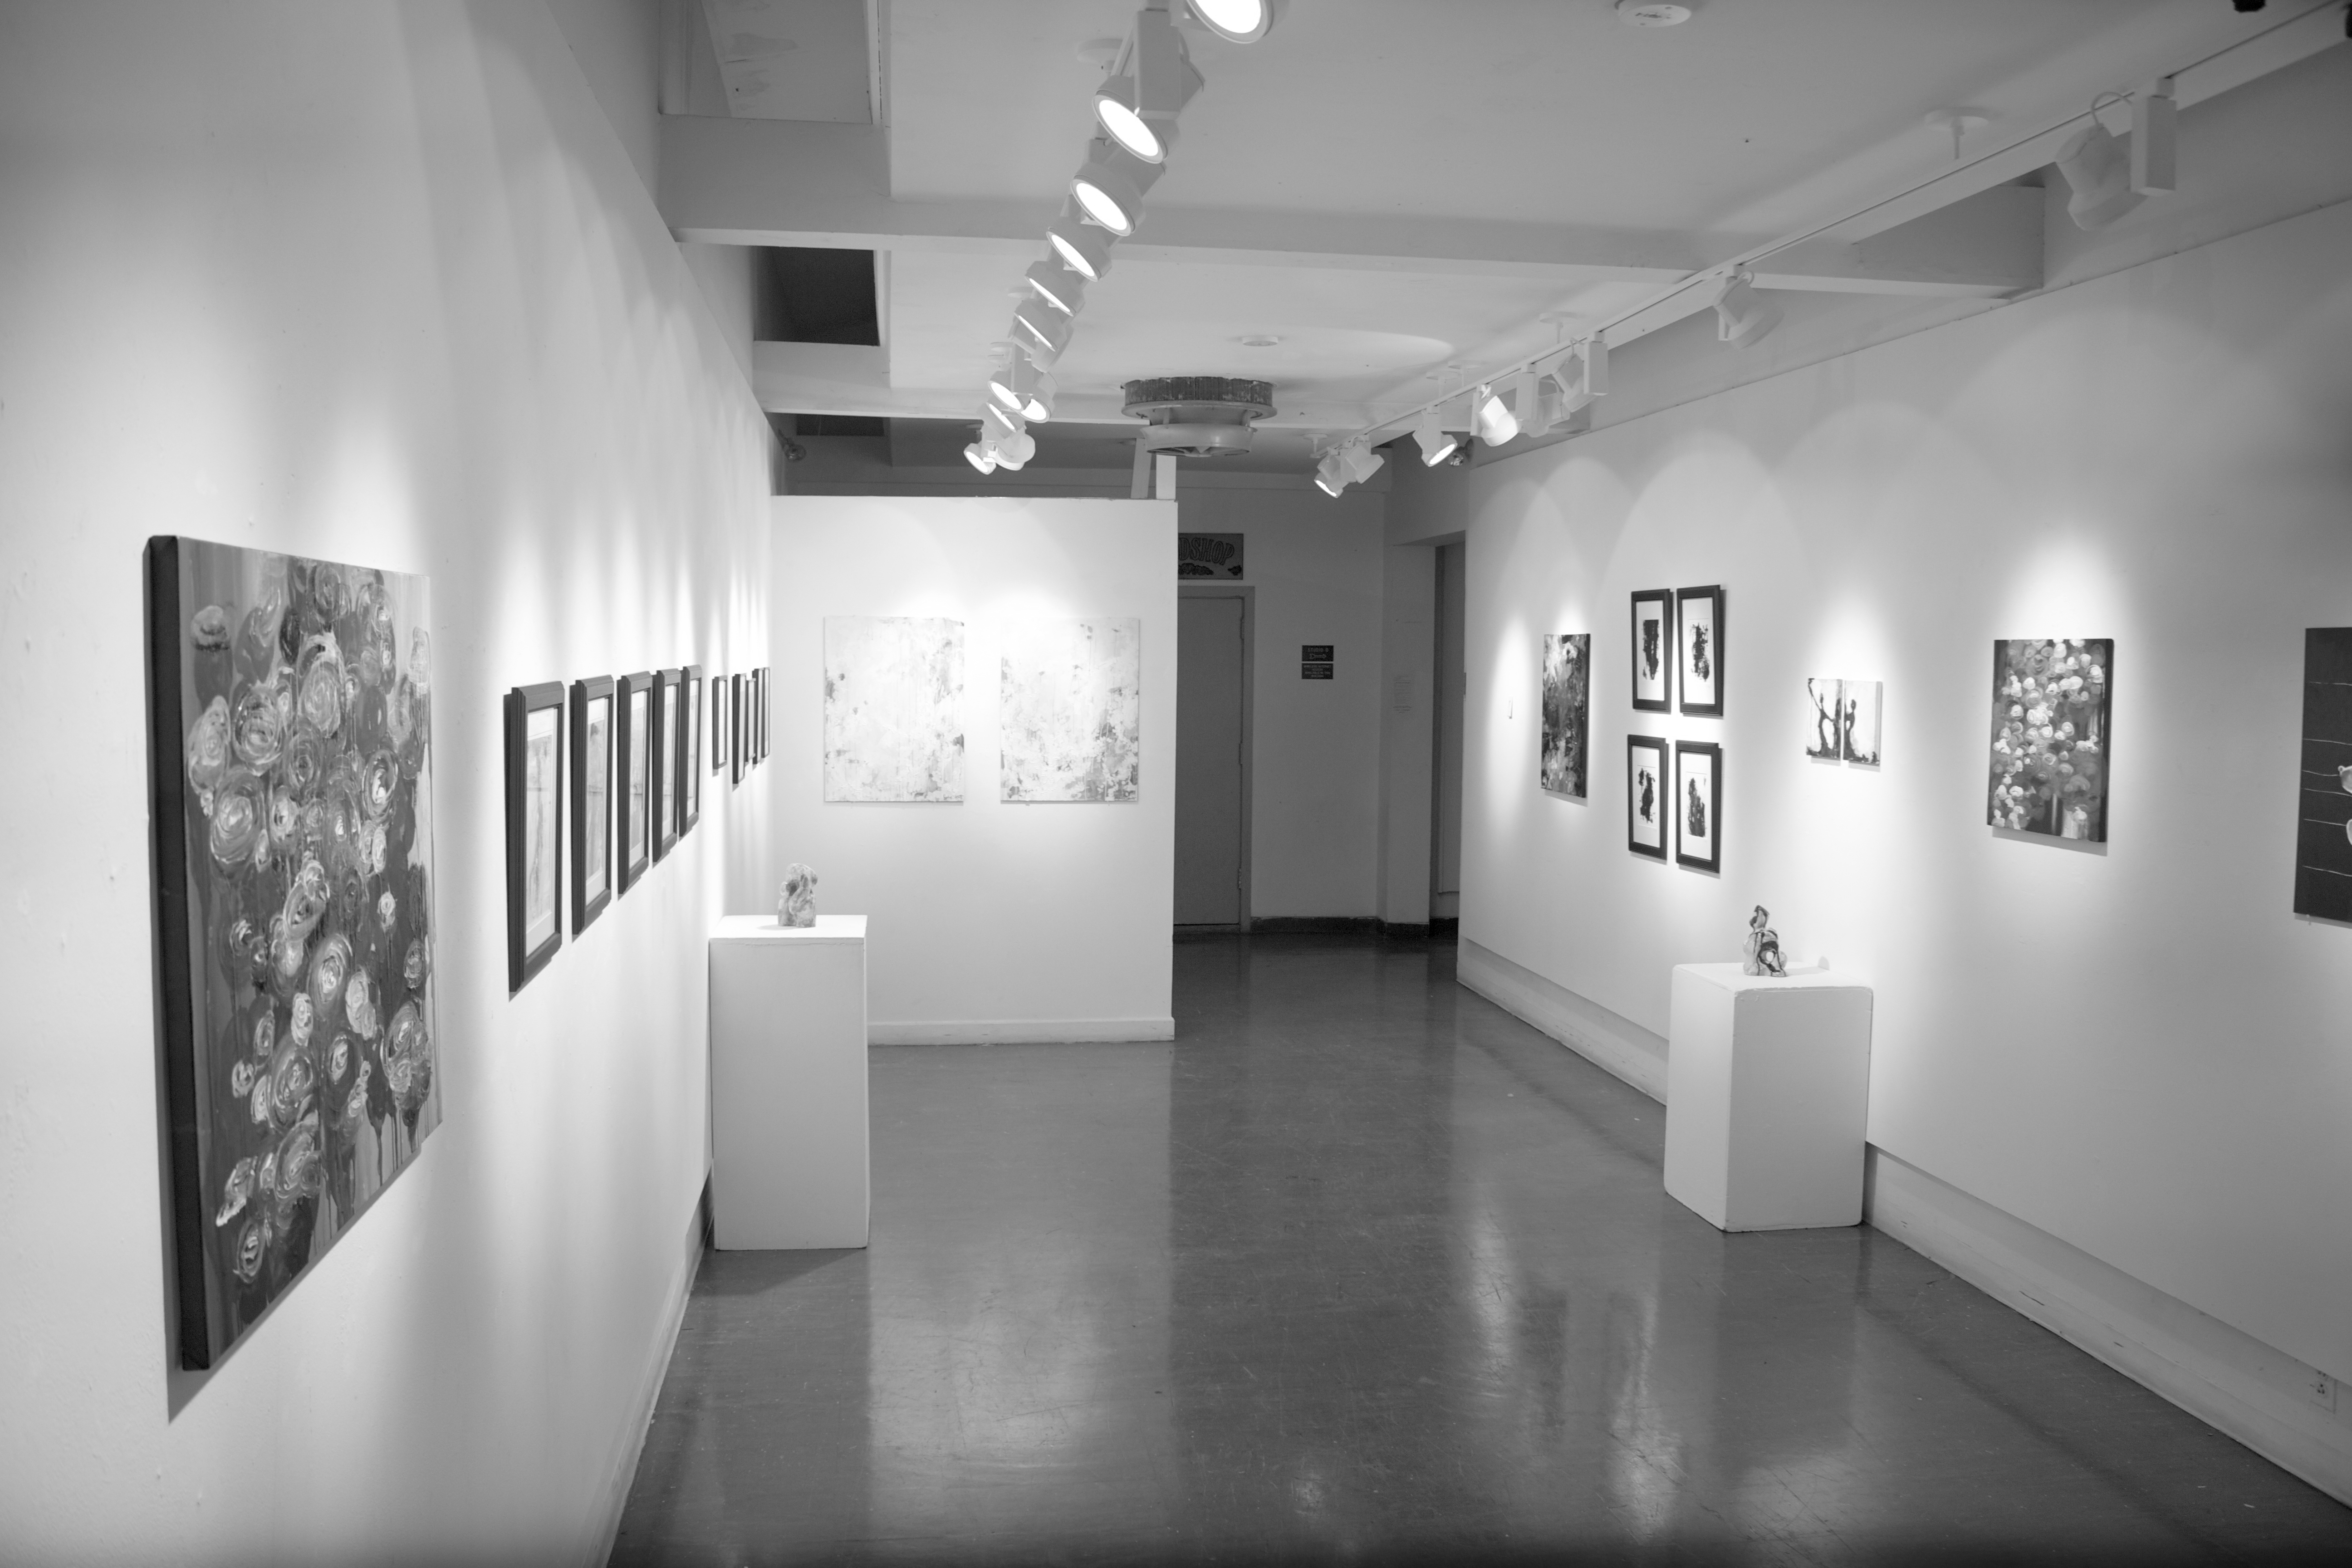 The exhibit showcasing Li and Hoff's artwork